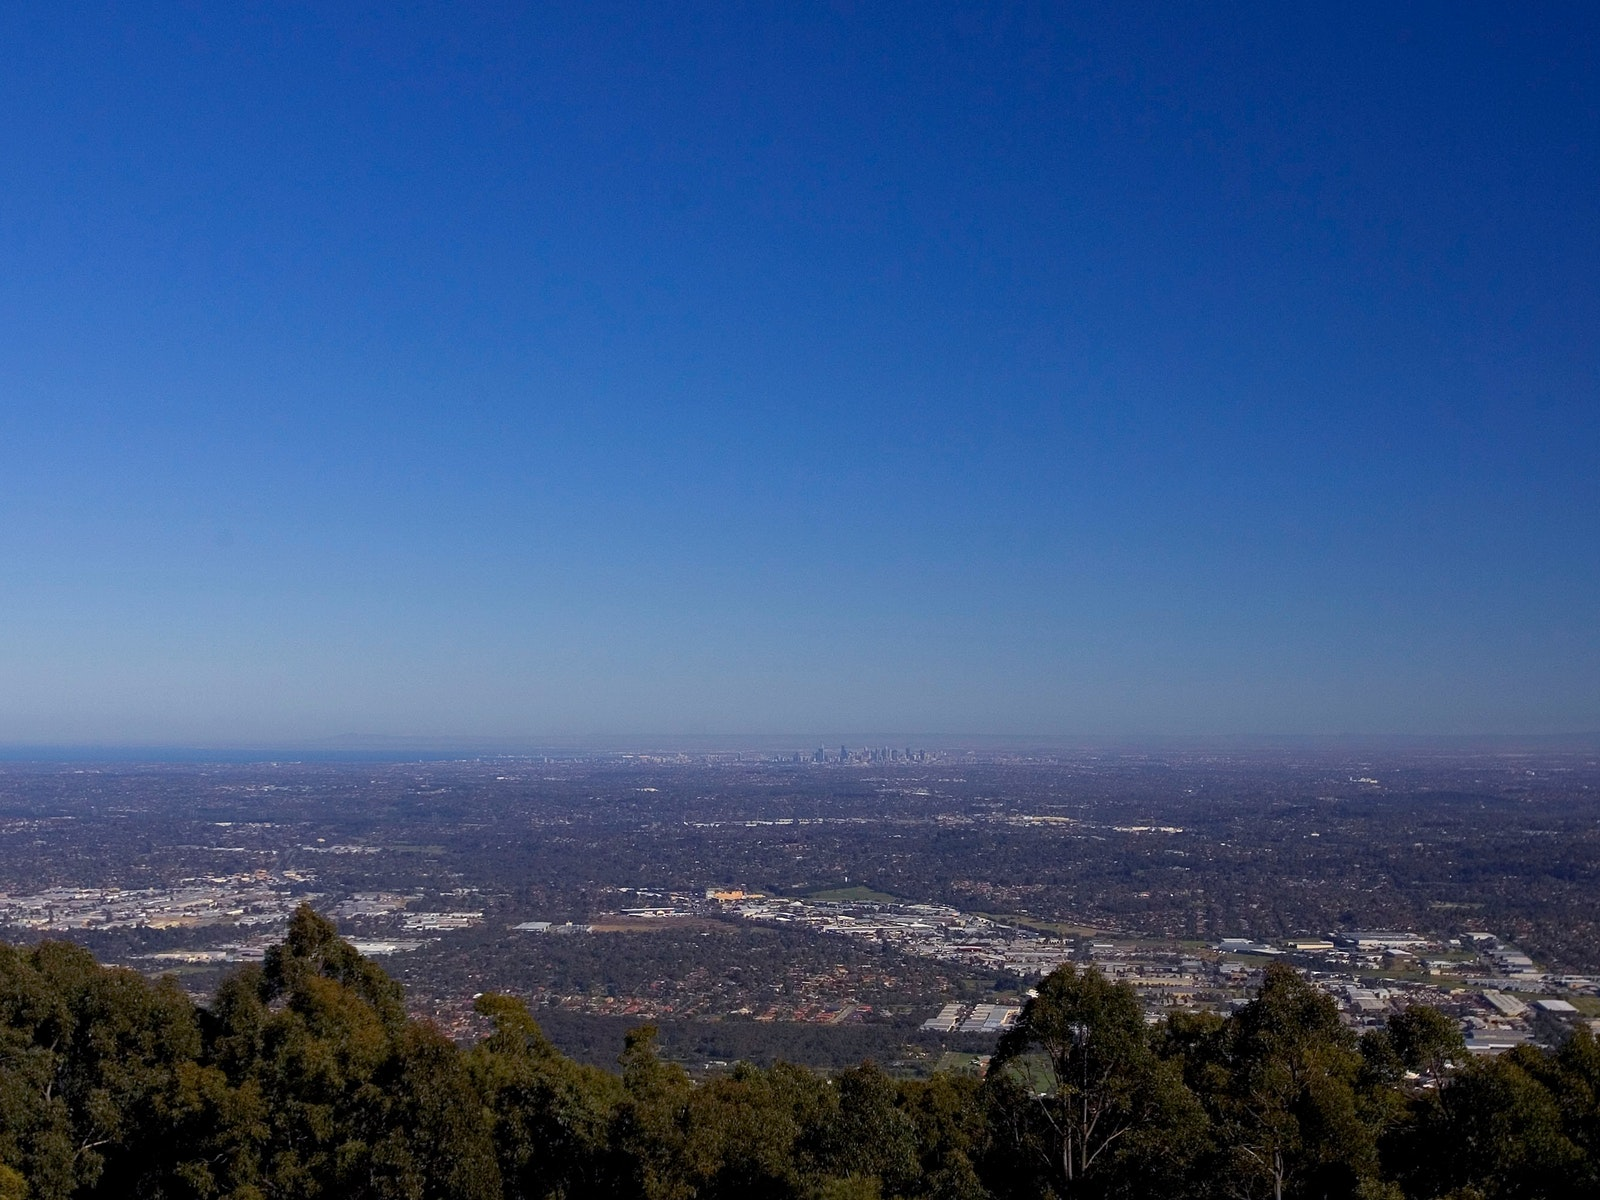 SkyHigh Mount Dandenong Day Shot